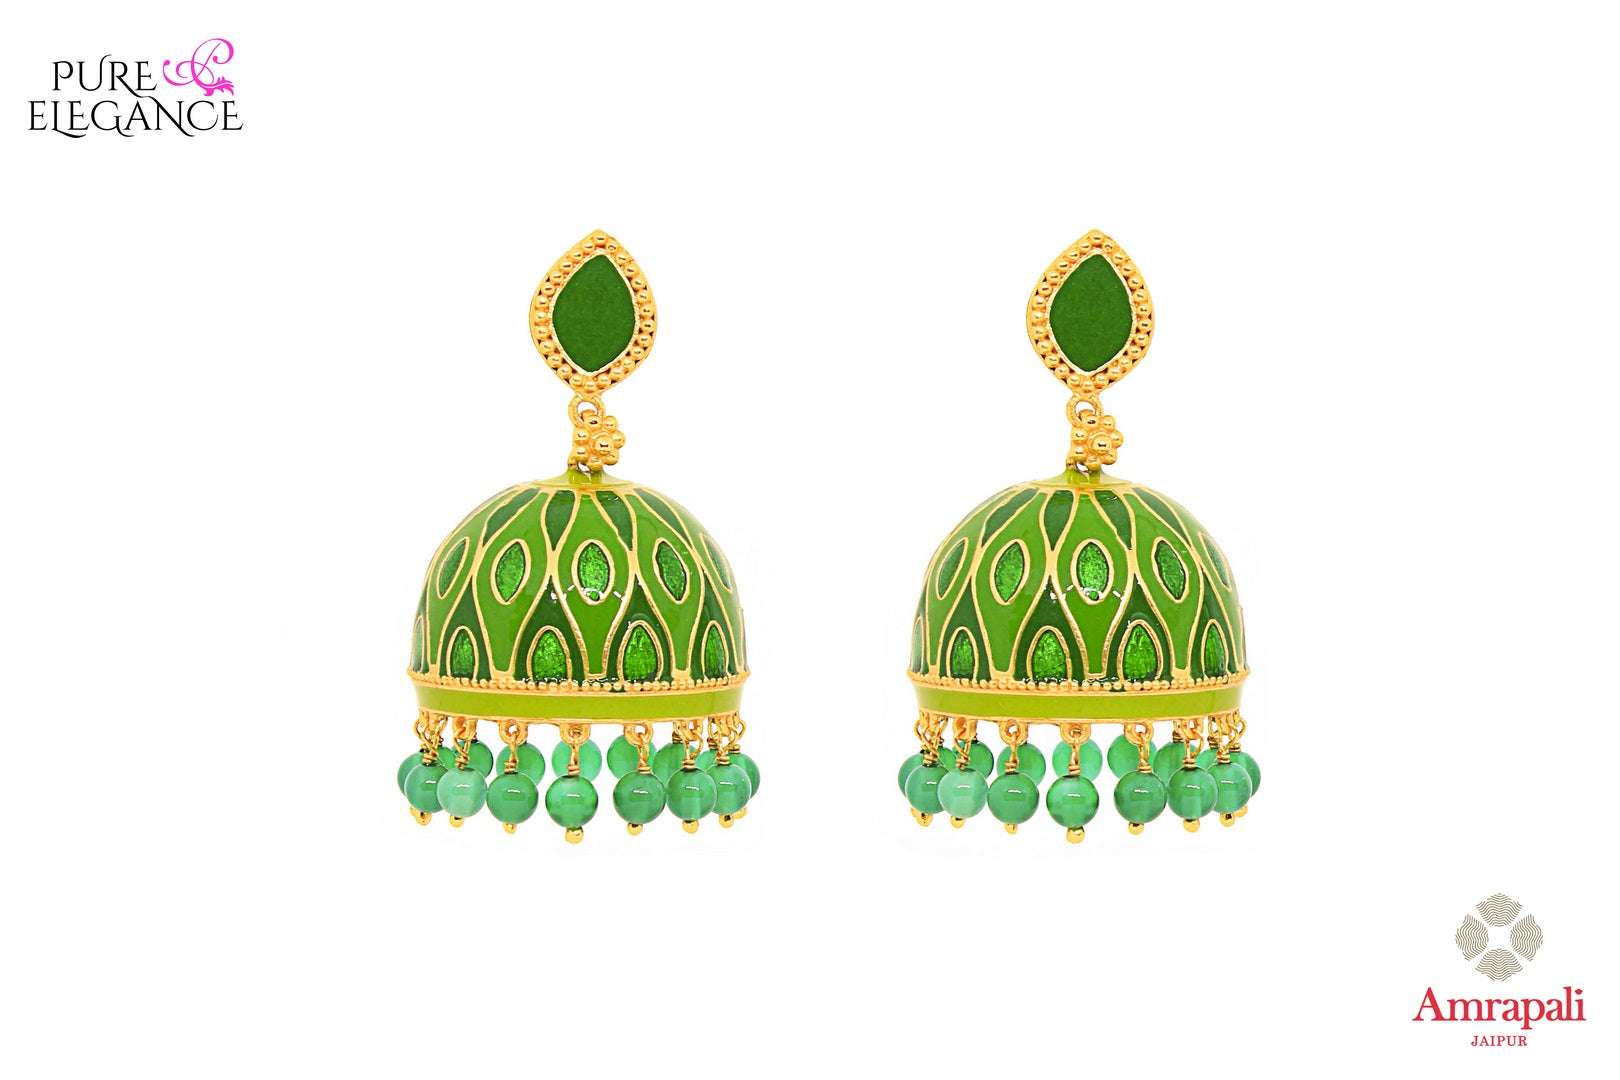 Buy Silver Gold Plated Green Onyx and Enamel Jhumka Earrings online in USA from Amrapali.  If you are looking for Indian silver earrings in USA, then Pure Elegance Indian fashion store is the place for you. A whole range of exquisite of ethnic Indian jewelry is waiting for you on our shelves, you can also opt to shop online.-full view